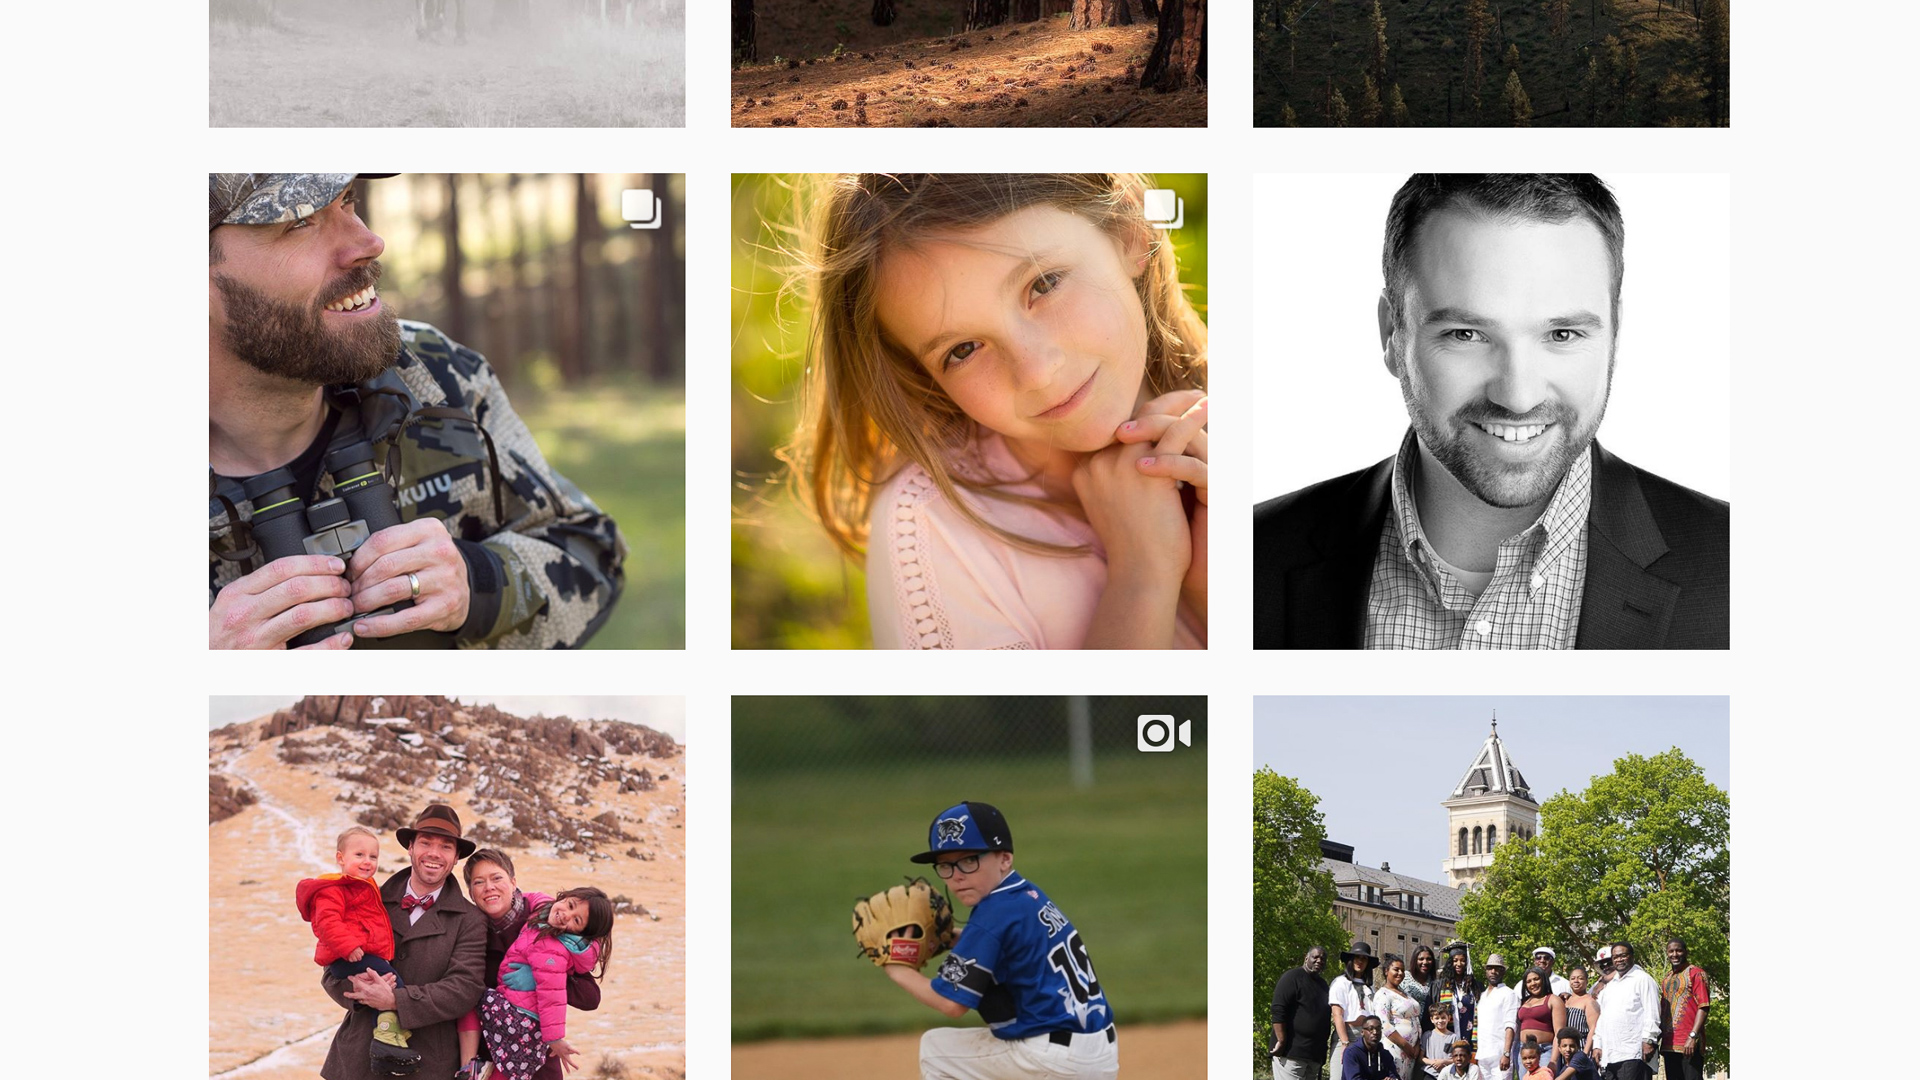 Best social media practices for photographers